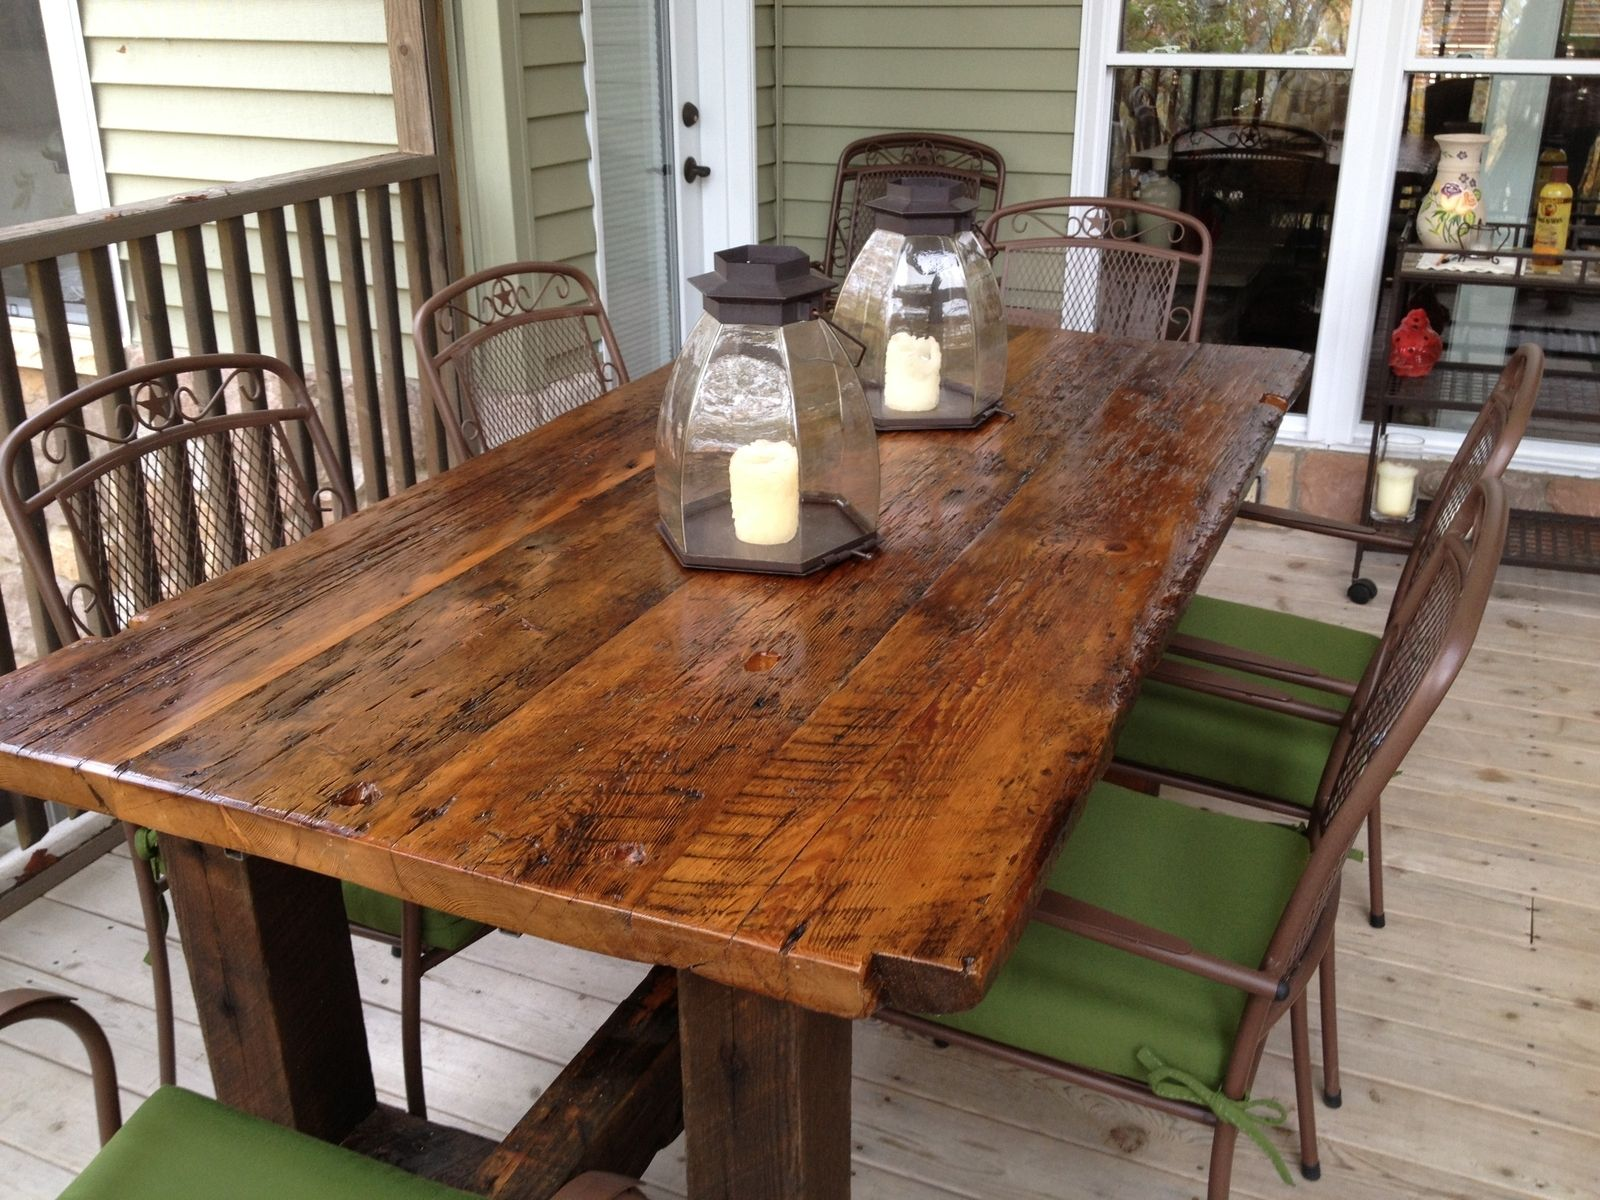 Matthew Elias Elias Custom Furniture And Design Newton NJ - Reclaimed wood dining table